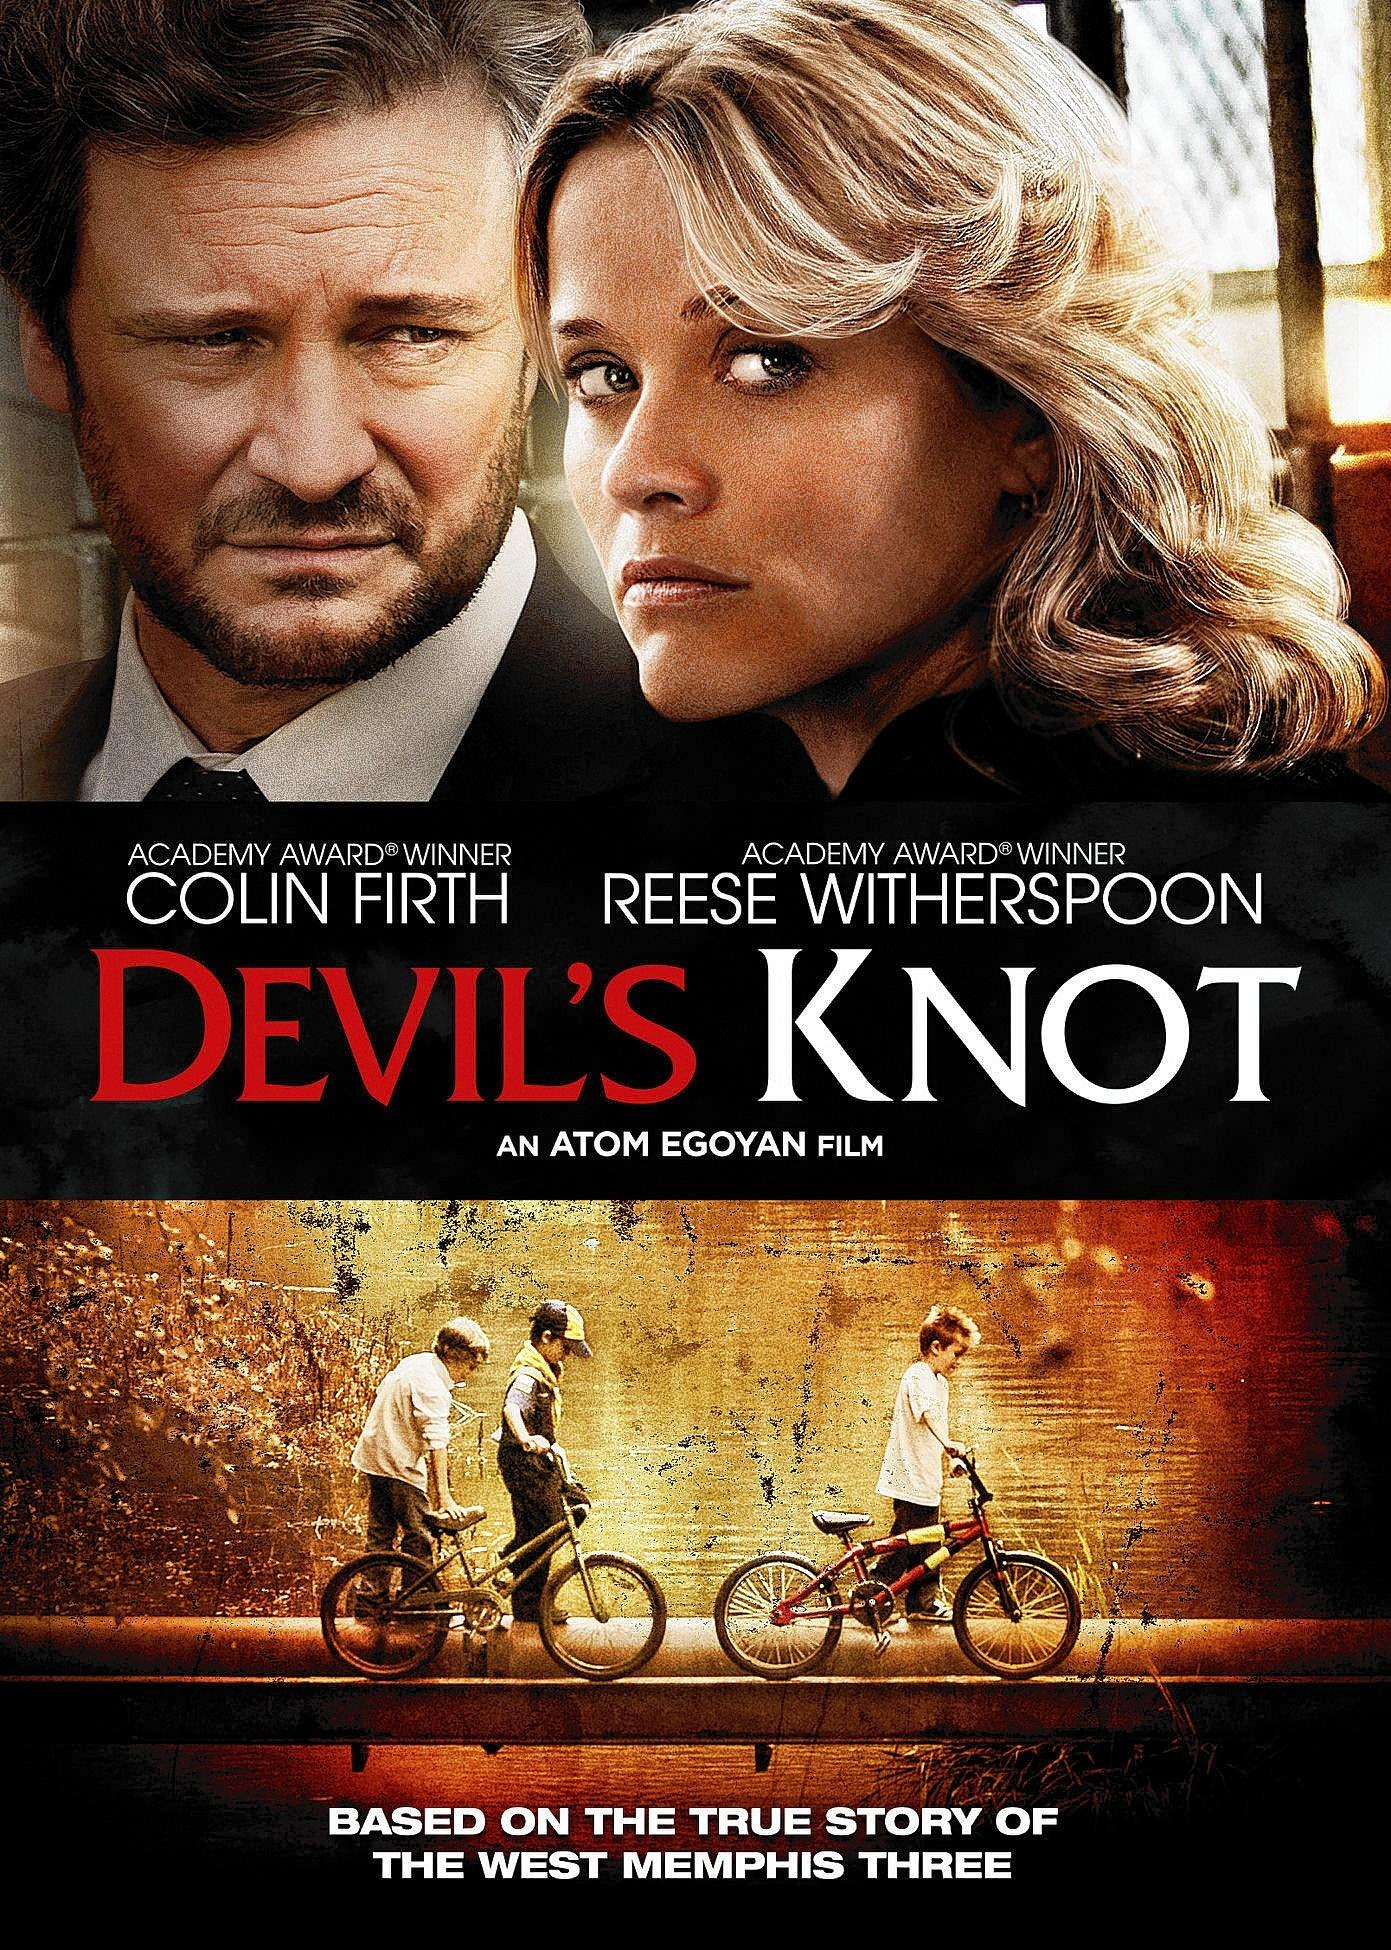 In 'Devils Knot,' now out on DVD and Blu-ray, Allentown native Dane DeHaan is third billed after Reese Witherspoon and Colin Firth. He plays a teenager who confesses to serious crimes but is never taken seriously.